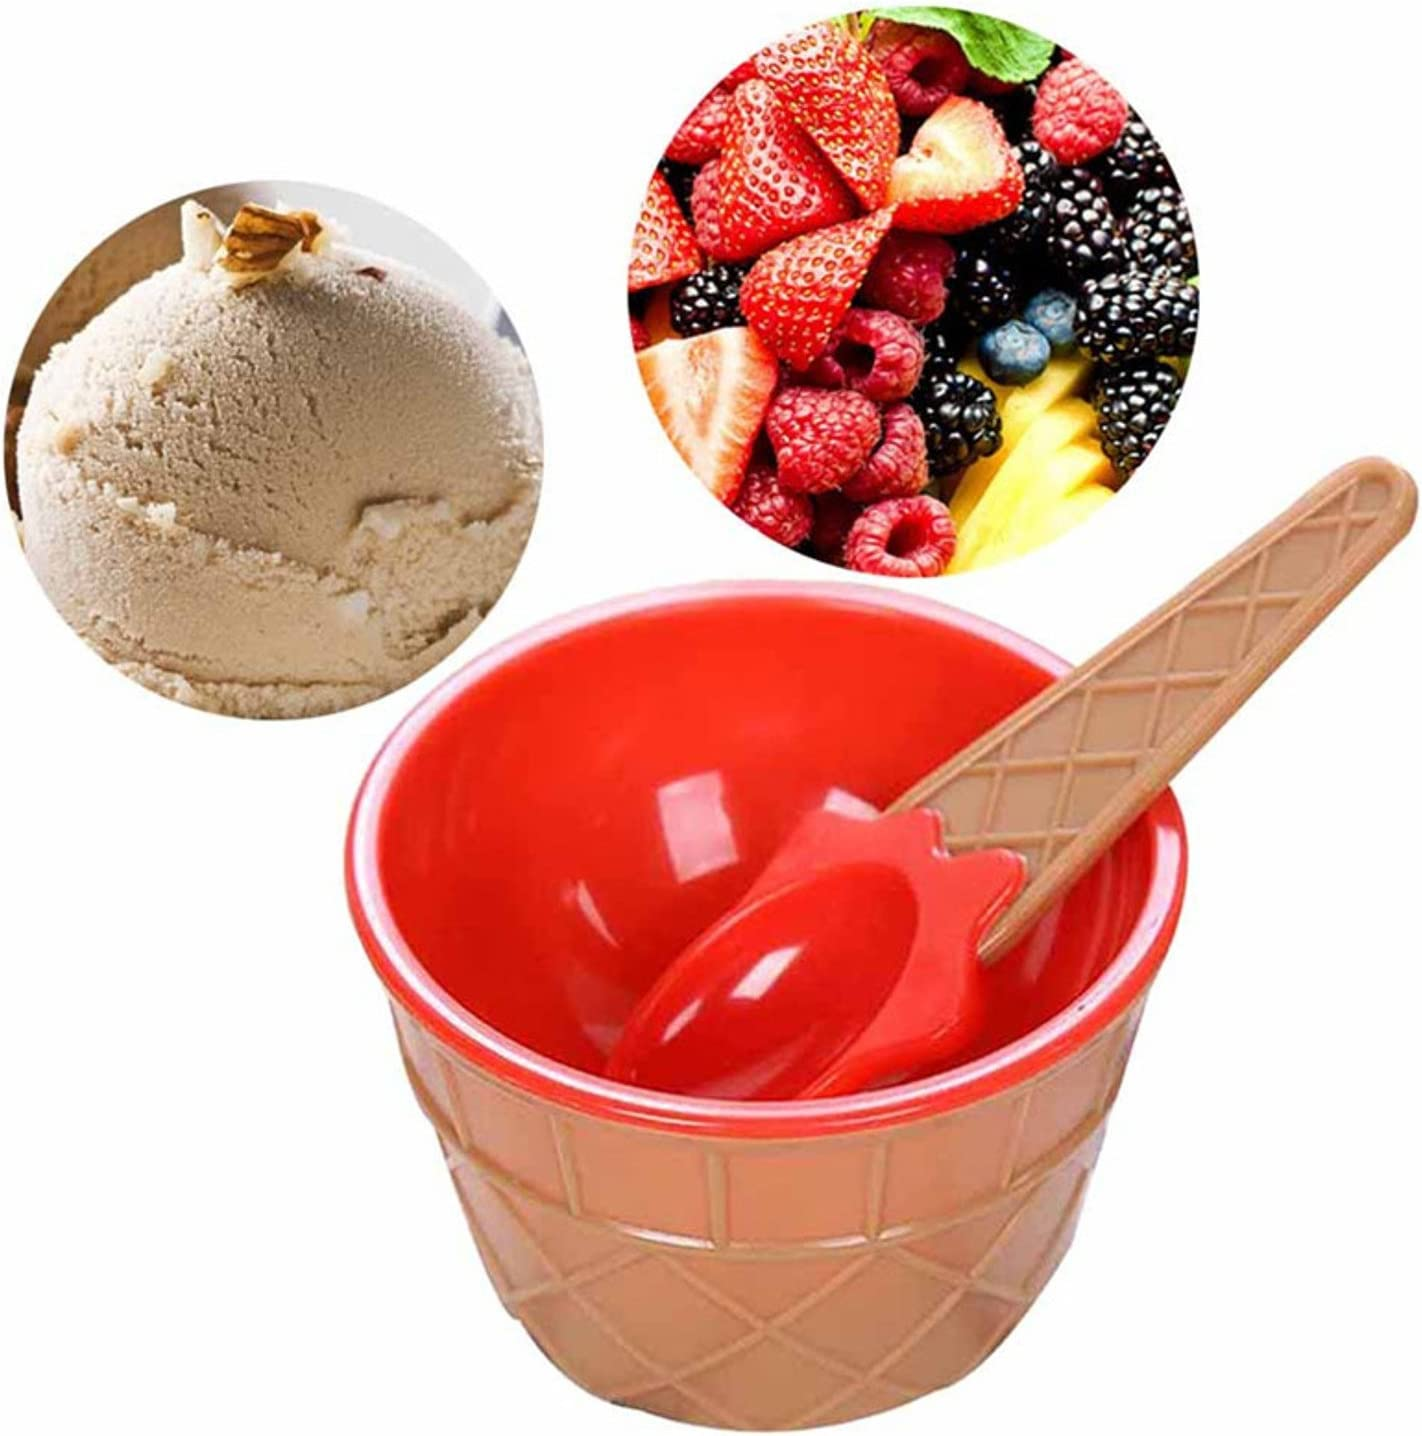 Lovely Kids Ice Cream Bowls Ice Cream Cup Couples Bowl Gifts Dessert A+